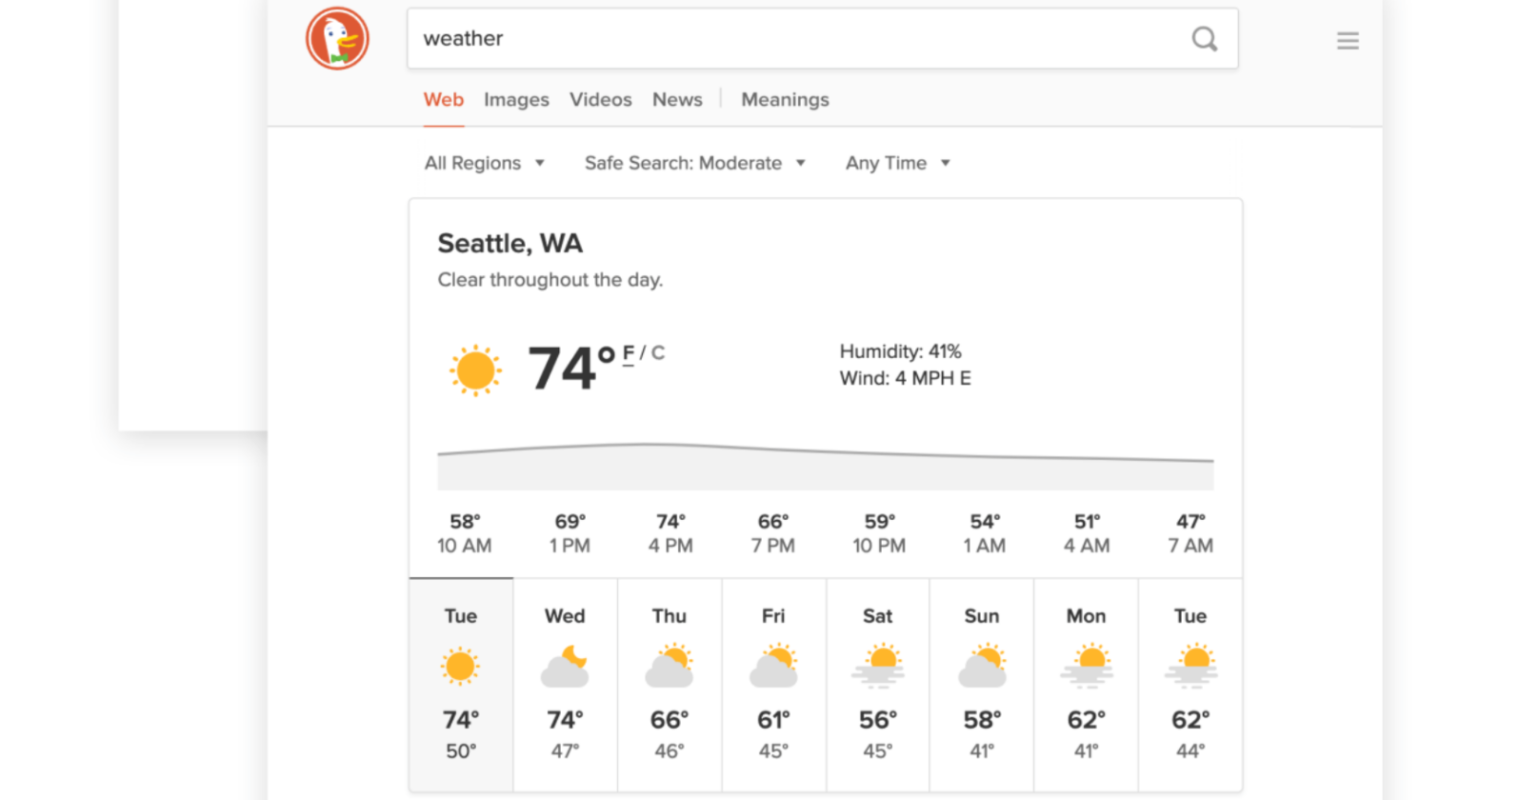 DuckDuckGo Upgrades Search Results for Weather Forecasts